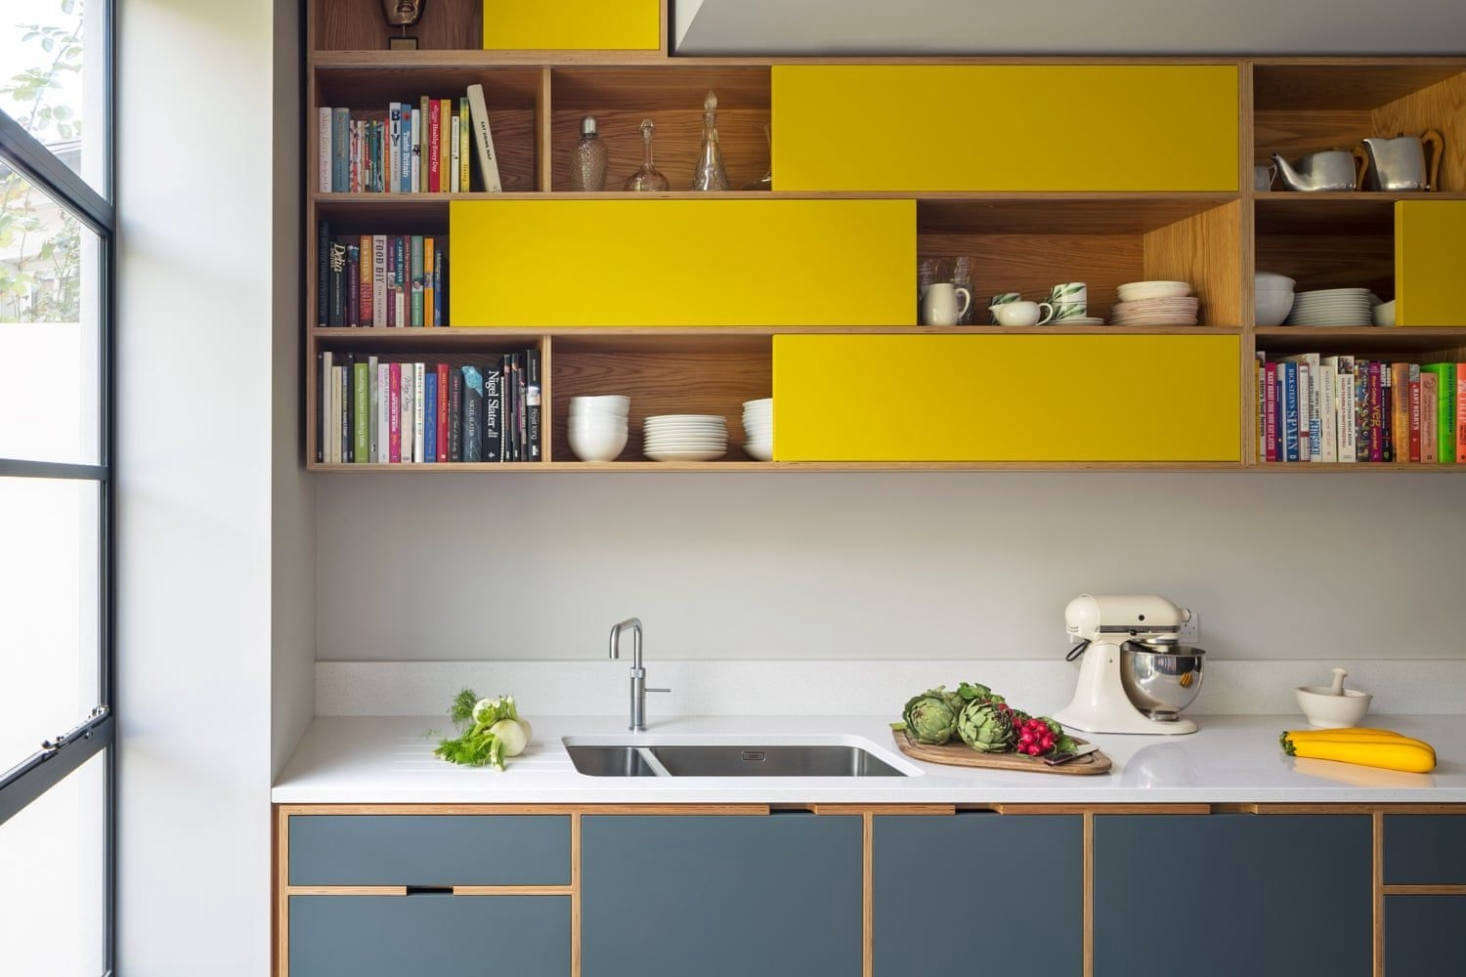 Custom cabinets by Uncommon Projects extend beyond the kitchen in this Victorian terrace house remodel in London designed by MW Architects. Explore the design in Kitchen of the Week: A Boundary-Breaking Remodel in Hampstead Heath. Photograph by Jocelyn Low from Uncommon Projects.